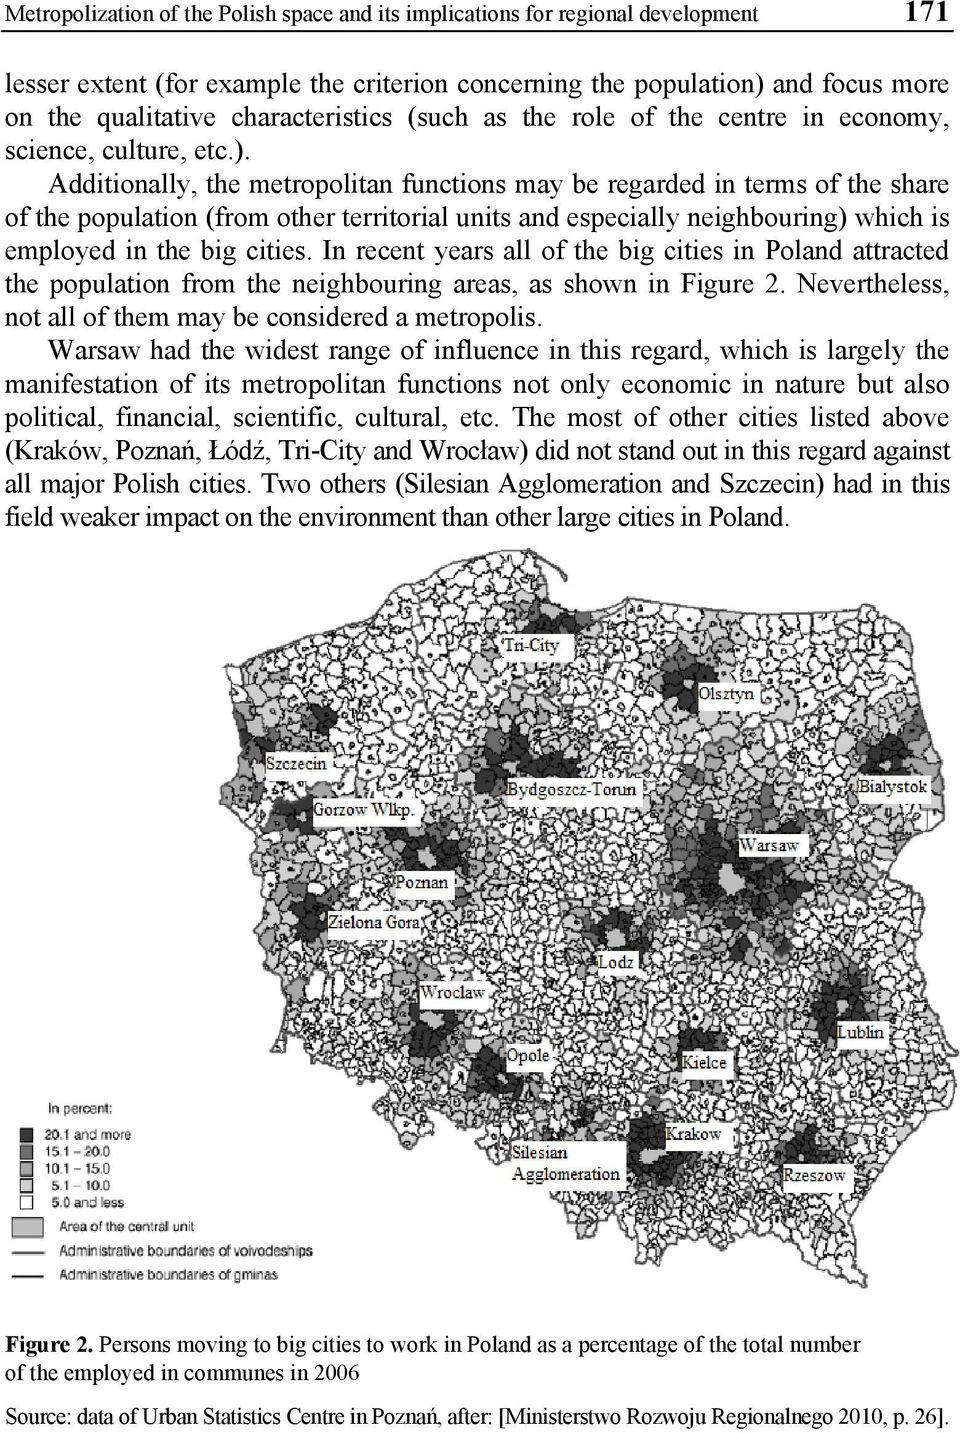 Additionally, the metropolitan functions may be regarded in terms of the share of the population (from other territorial units and especially neighbouring) which is employed in the big cities.